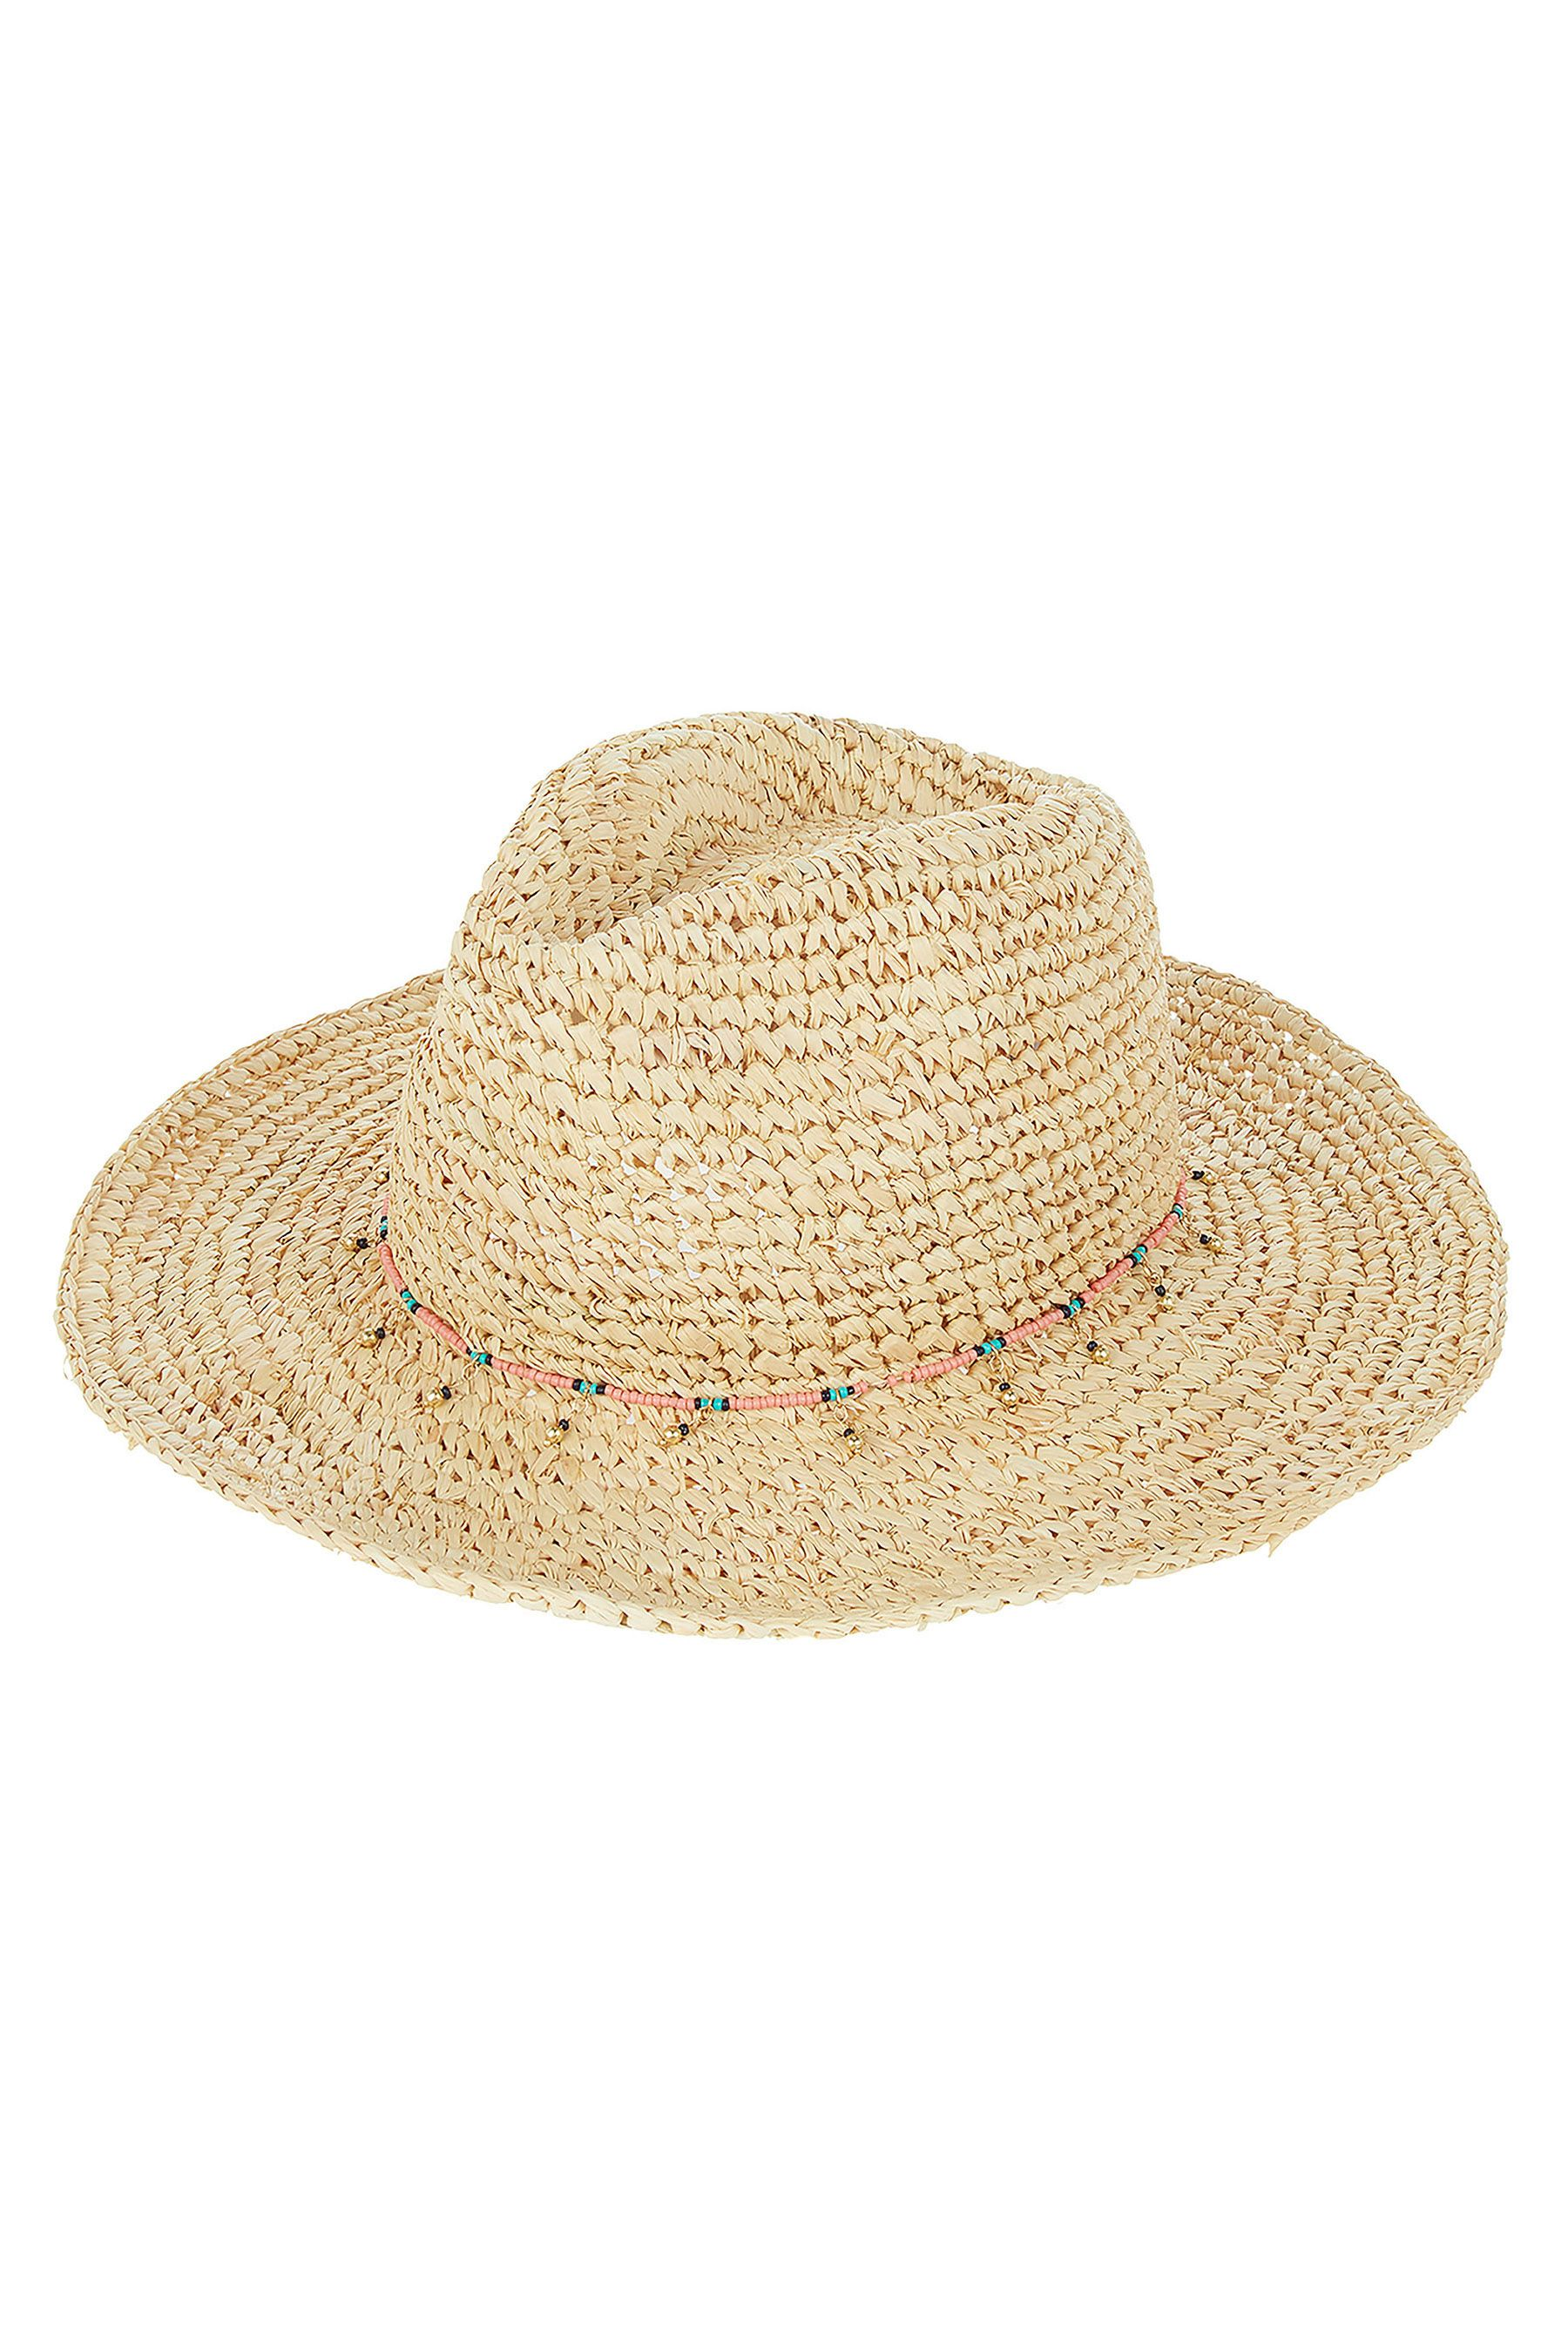 f3d7c977 Womens Accessorize Nude Charm Crochet Cowboy Hat - Cream | Products ...